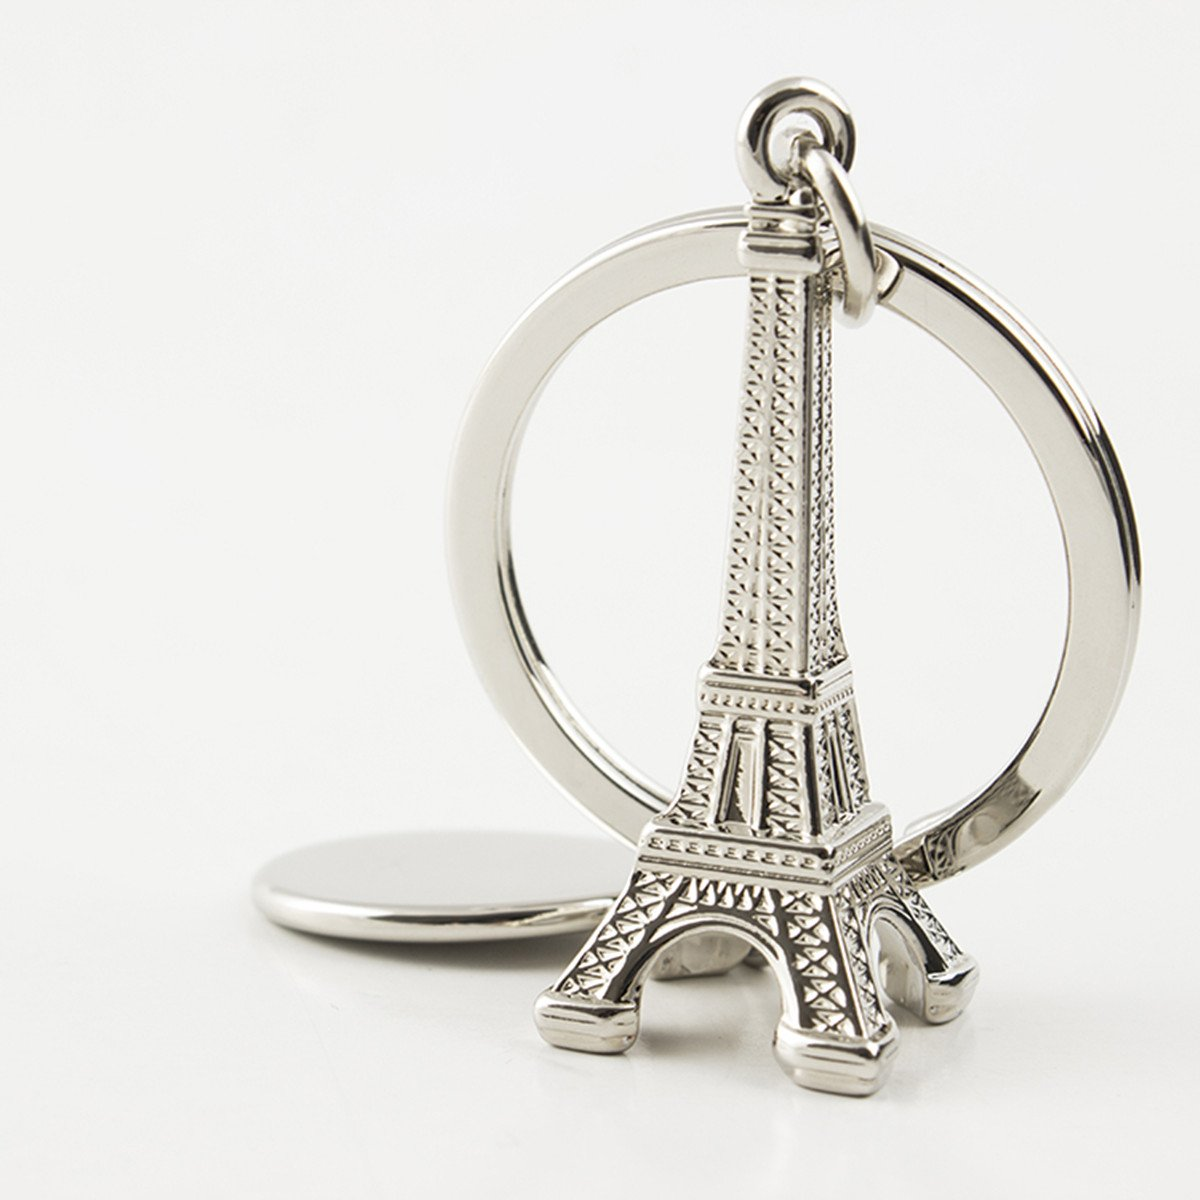 9abb24b195 Amazon.com : Reizteko Silver Eiffel Tower key chain favor from Paris,  French souvenirs key rings : Office Products